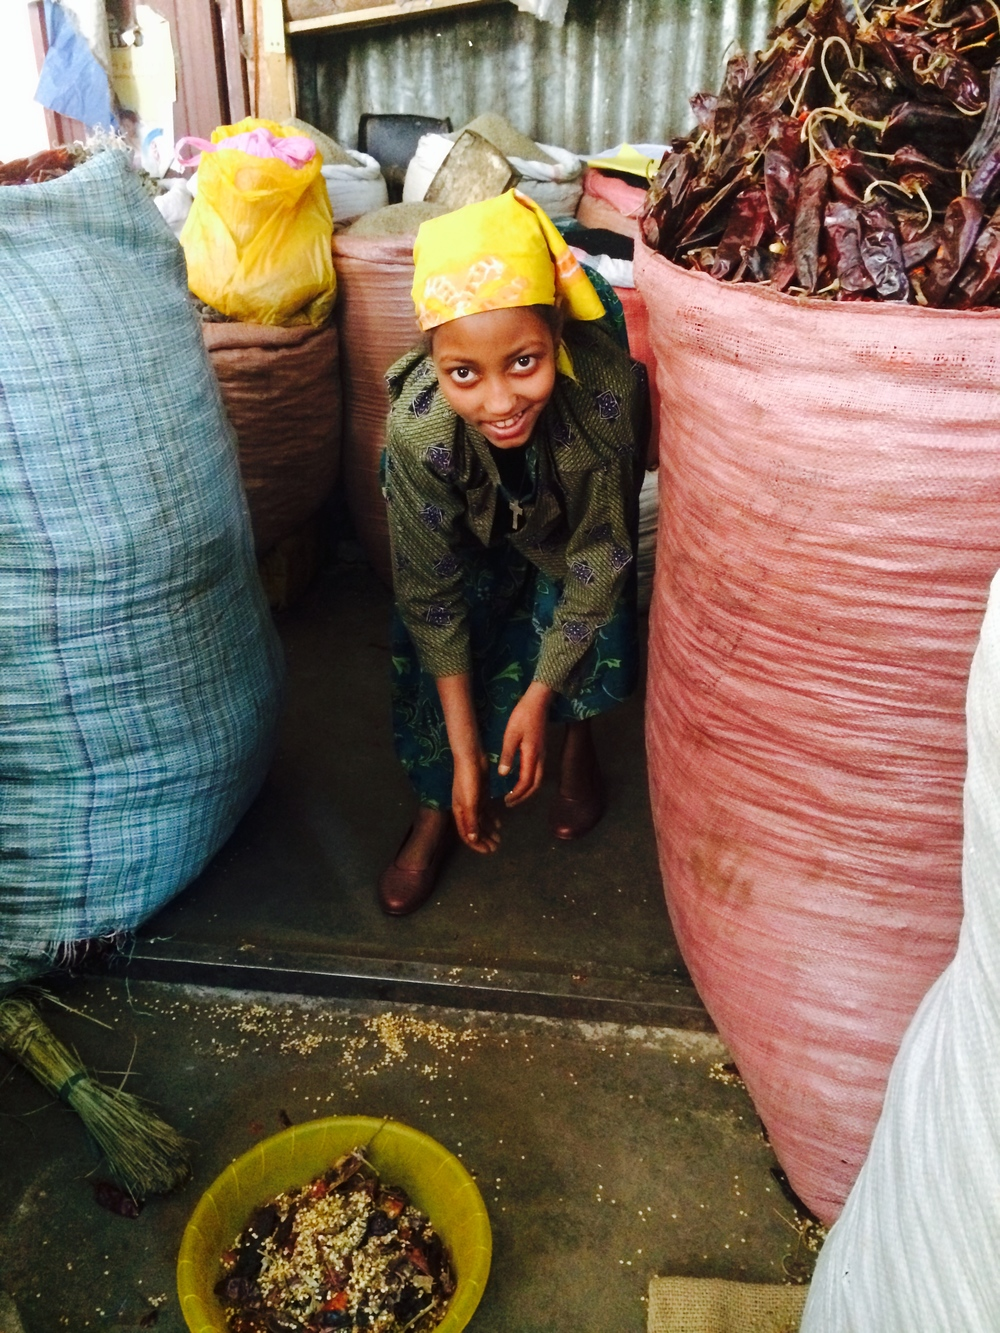 A young girl cleans up after her relatives cut the tops off of the berbere peppers.